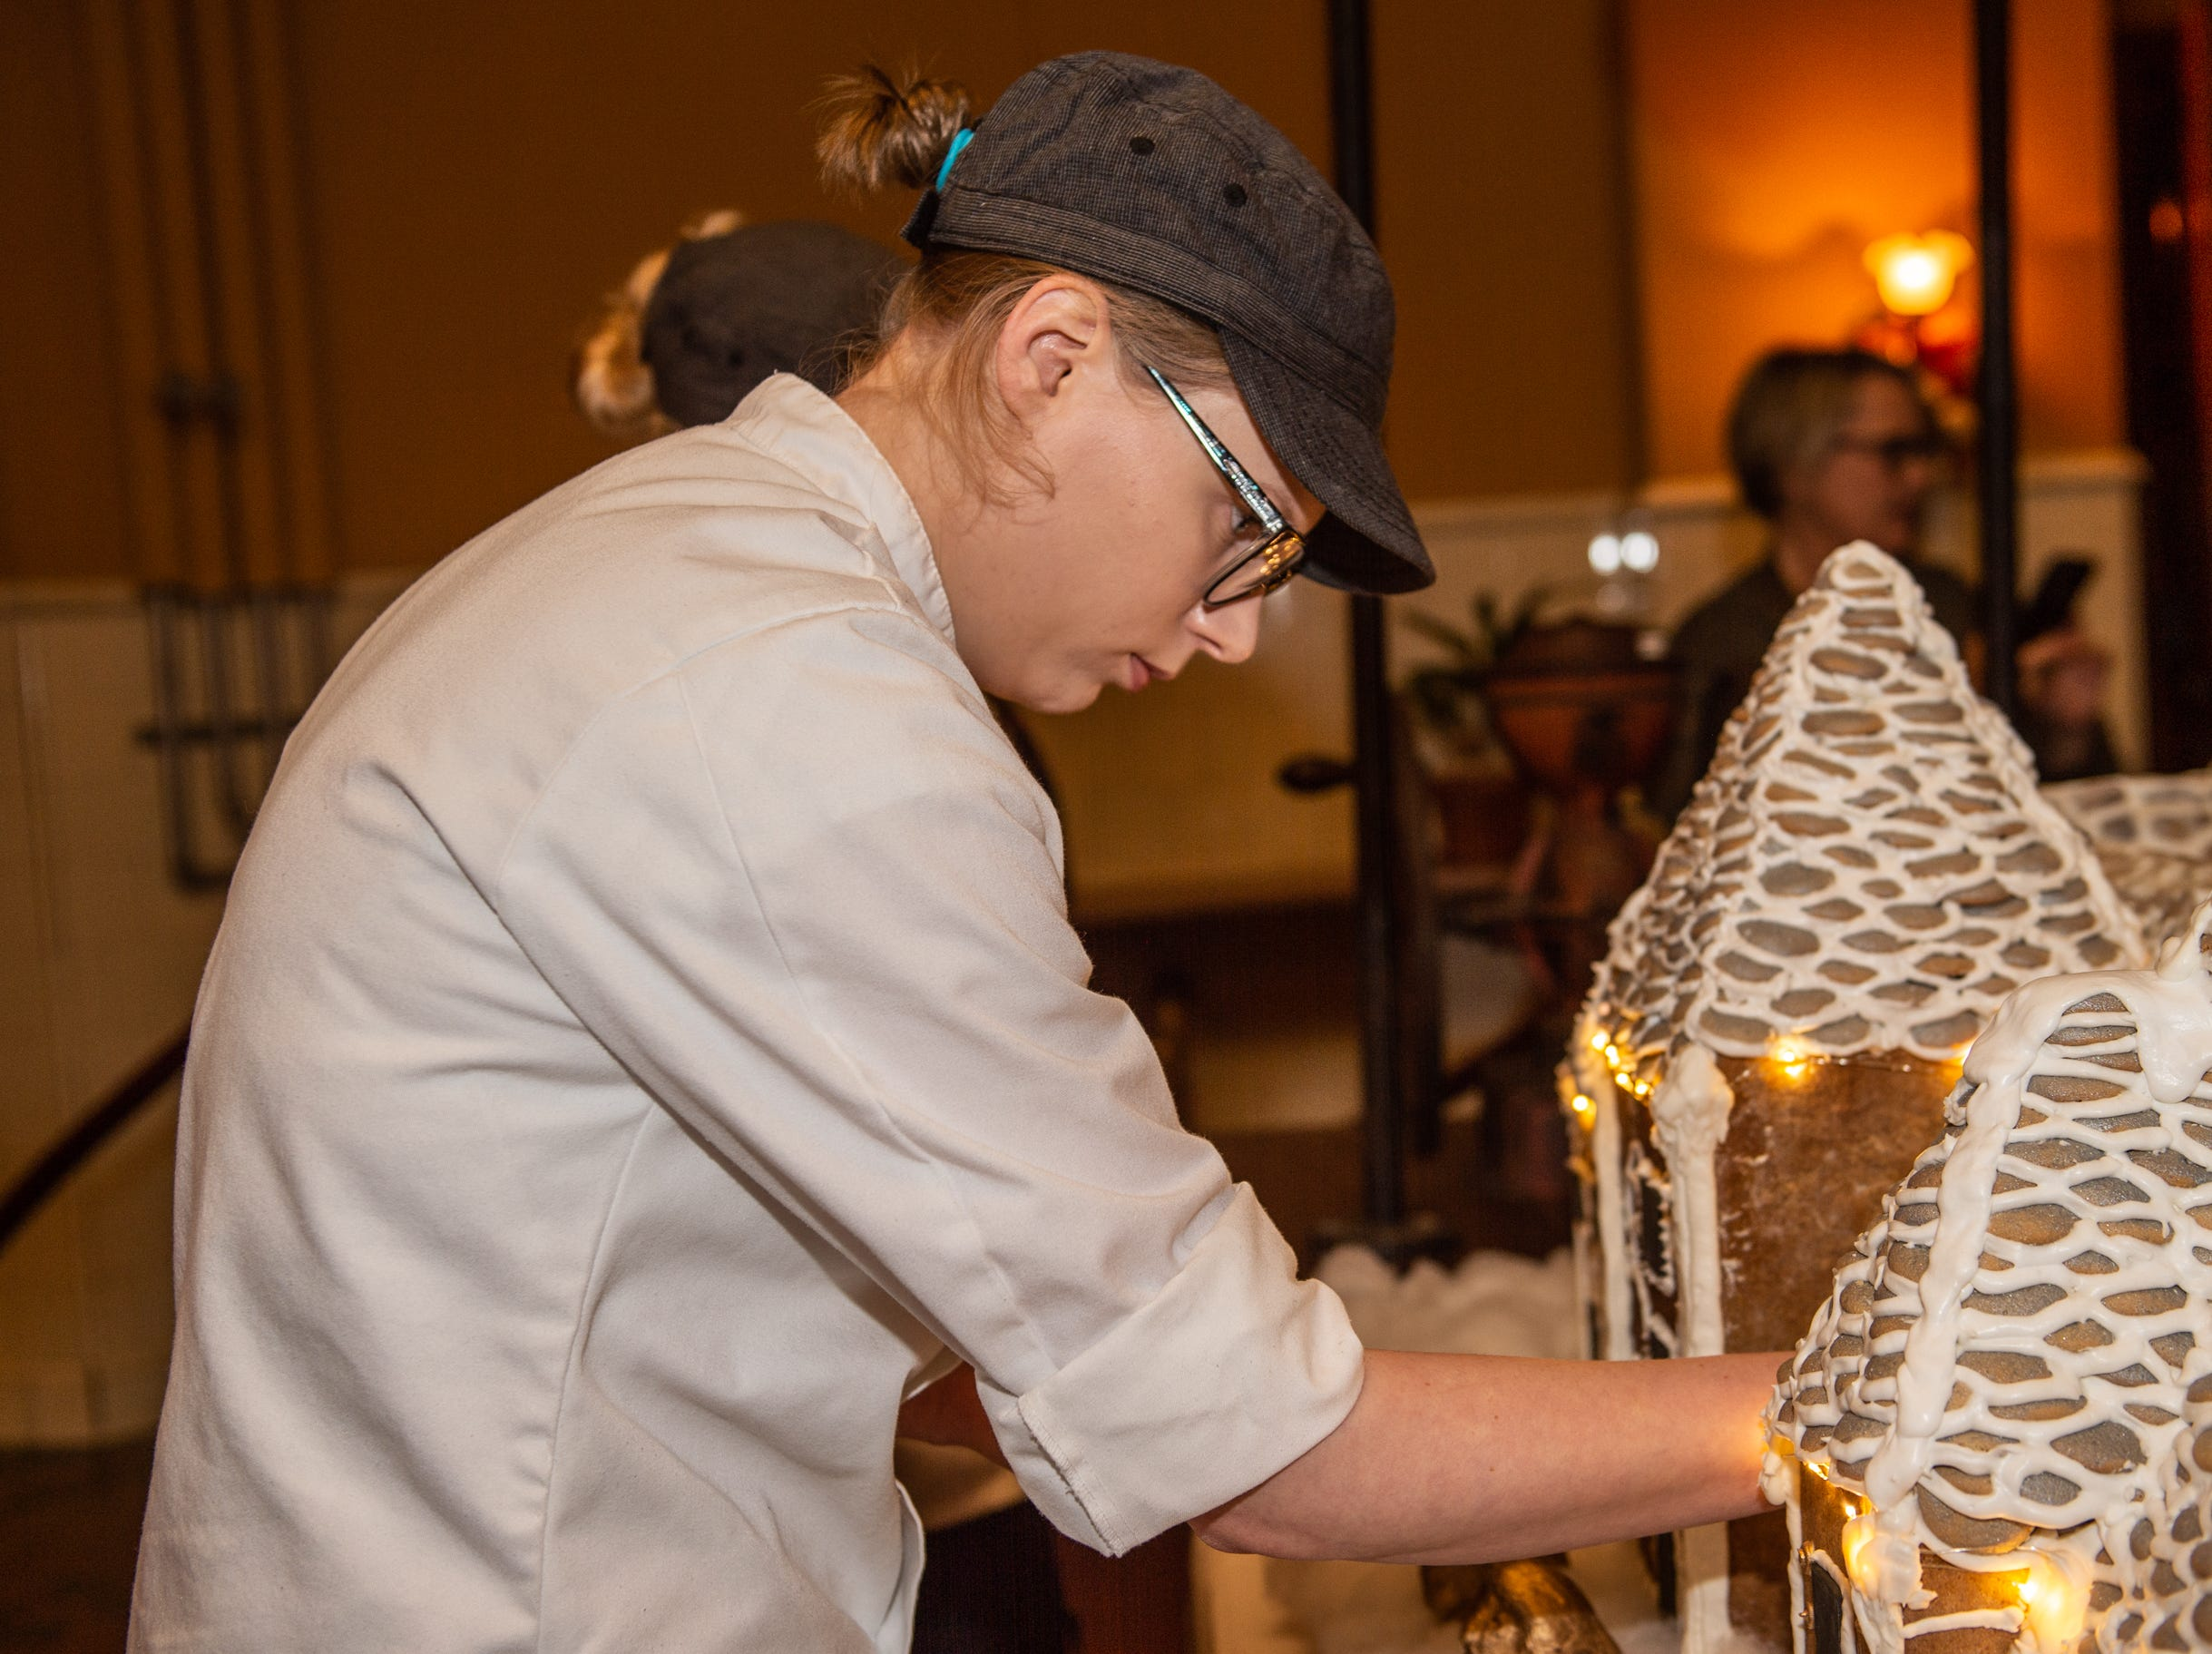 Biltmore pastry demi chef Megan Moorhead helps put the finishing touches on the gingerbread house in the Biltmore House kitchen on the morning of Nov. 2, 2018.